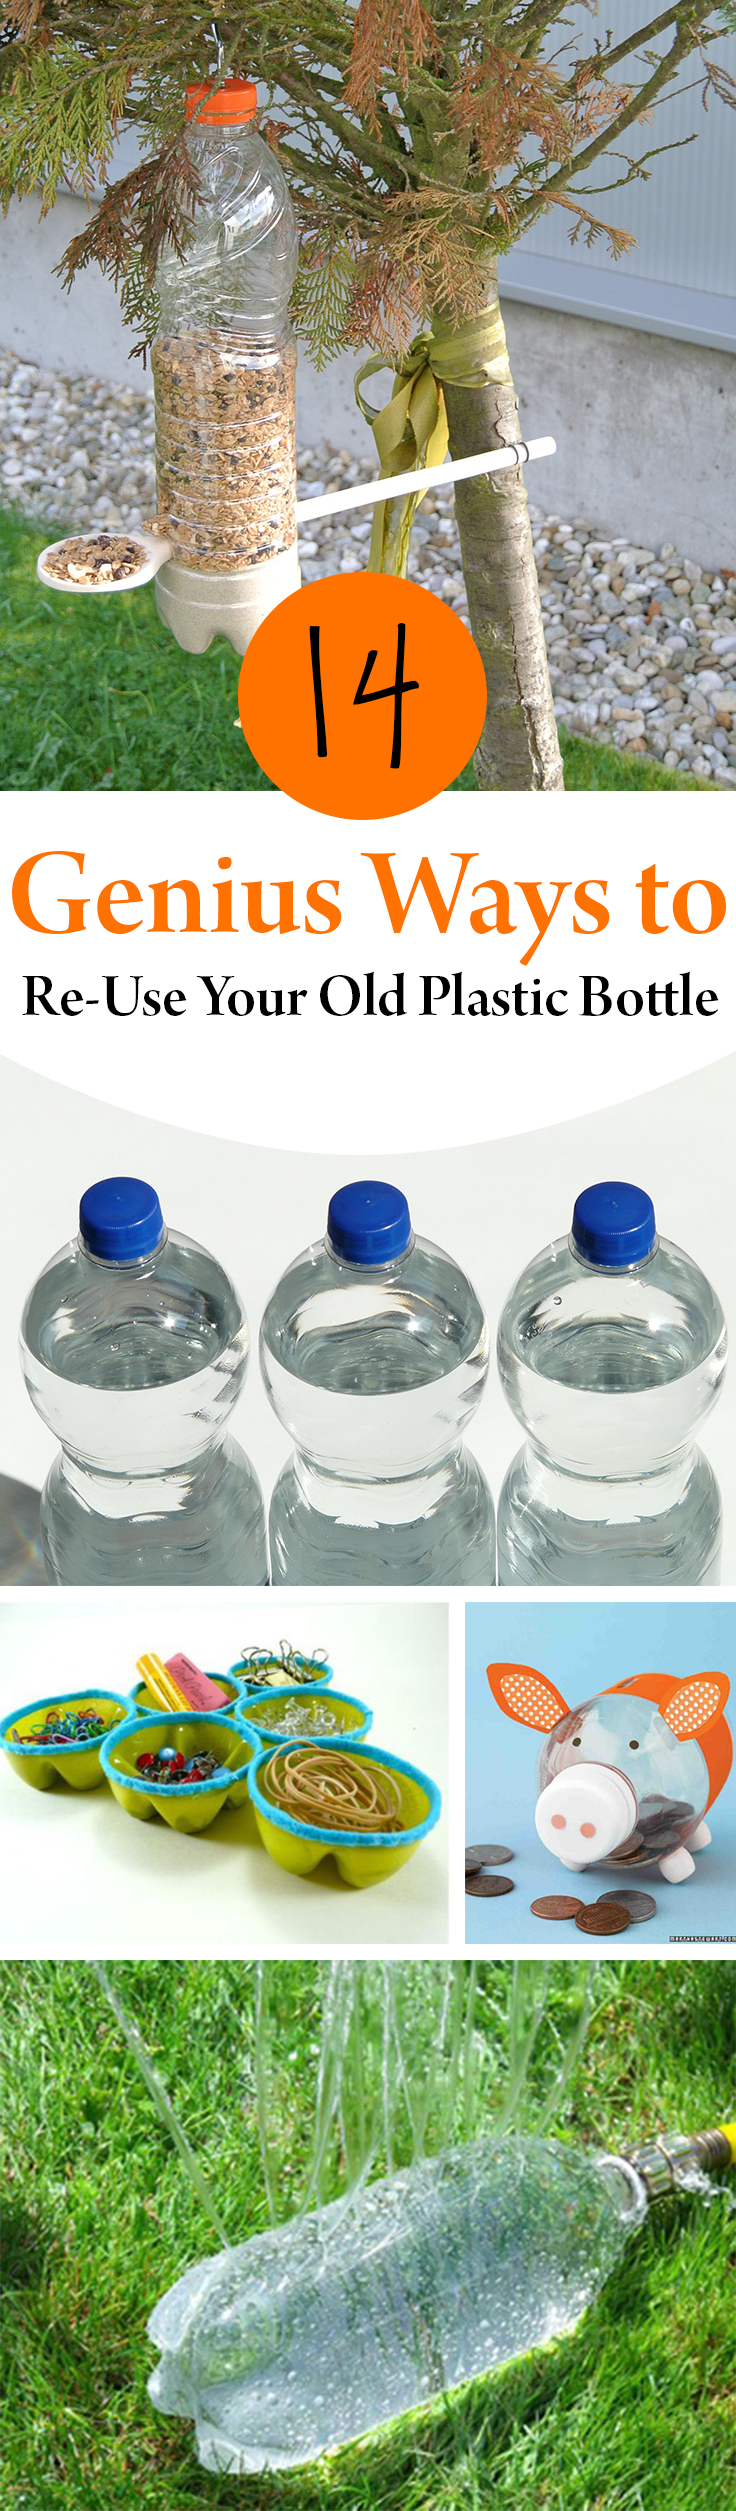 14 Genius Ways to Re-Use Your Old Plastic Bottle